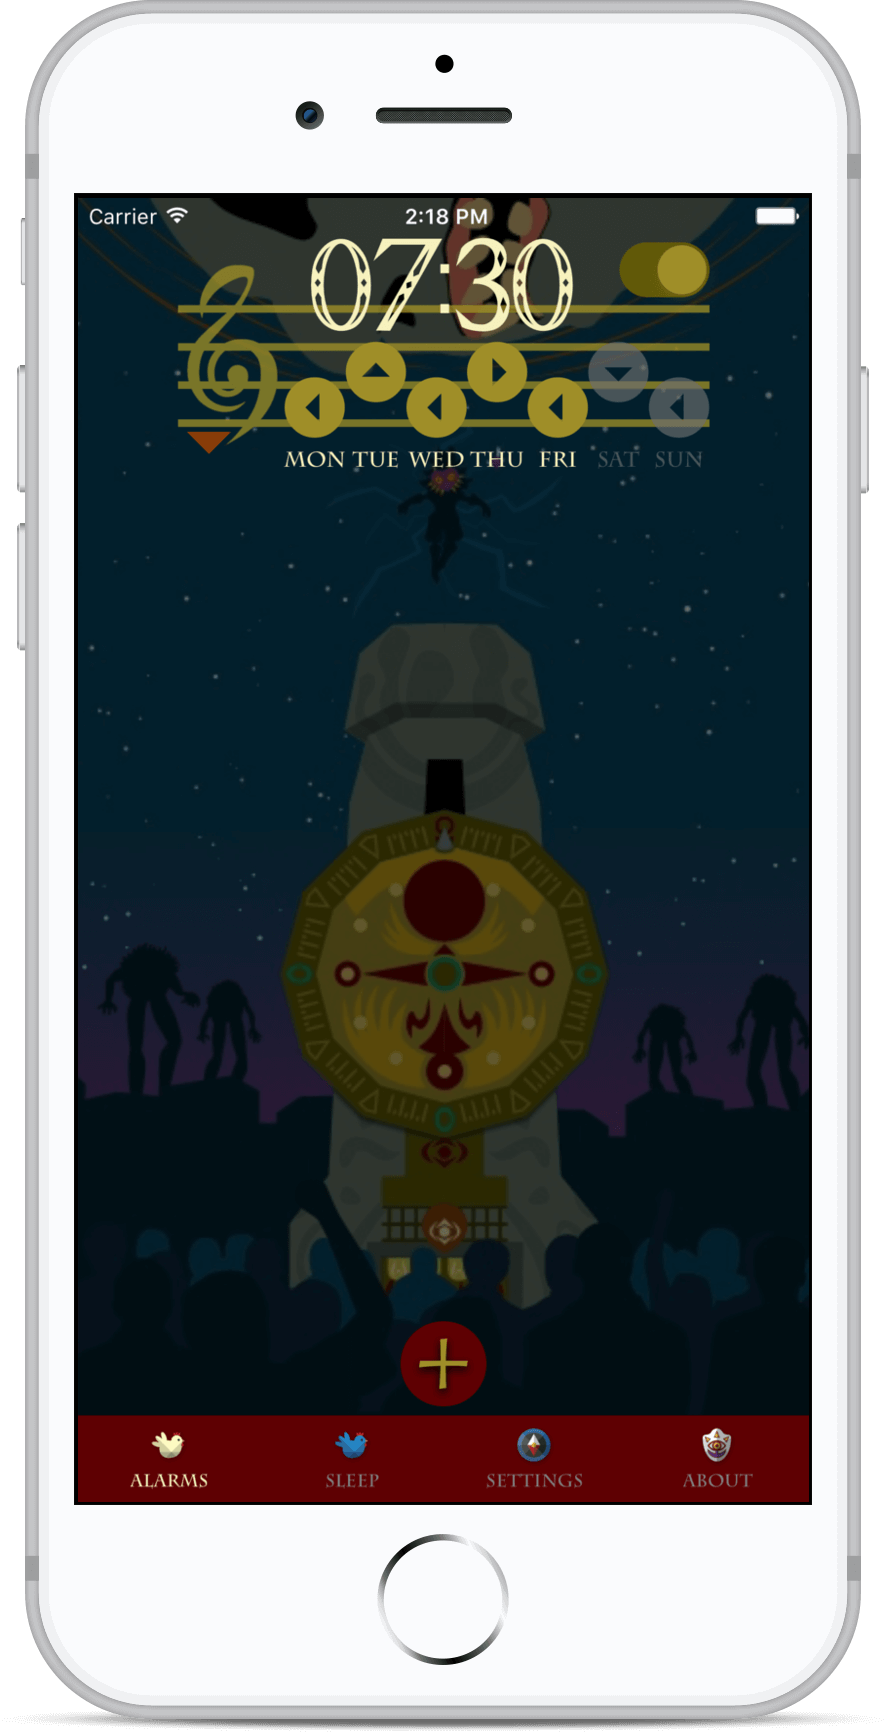 Zelda Alarm clock app on iphone 8 white